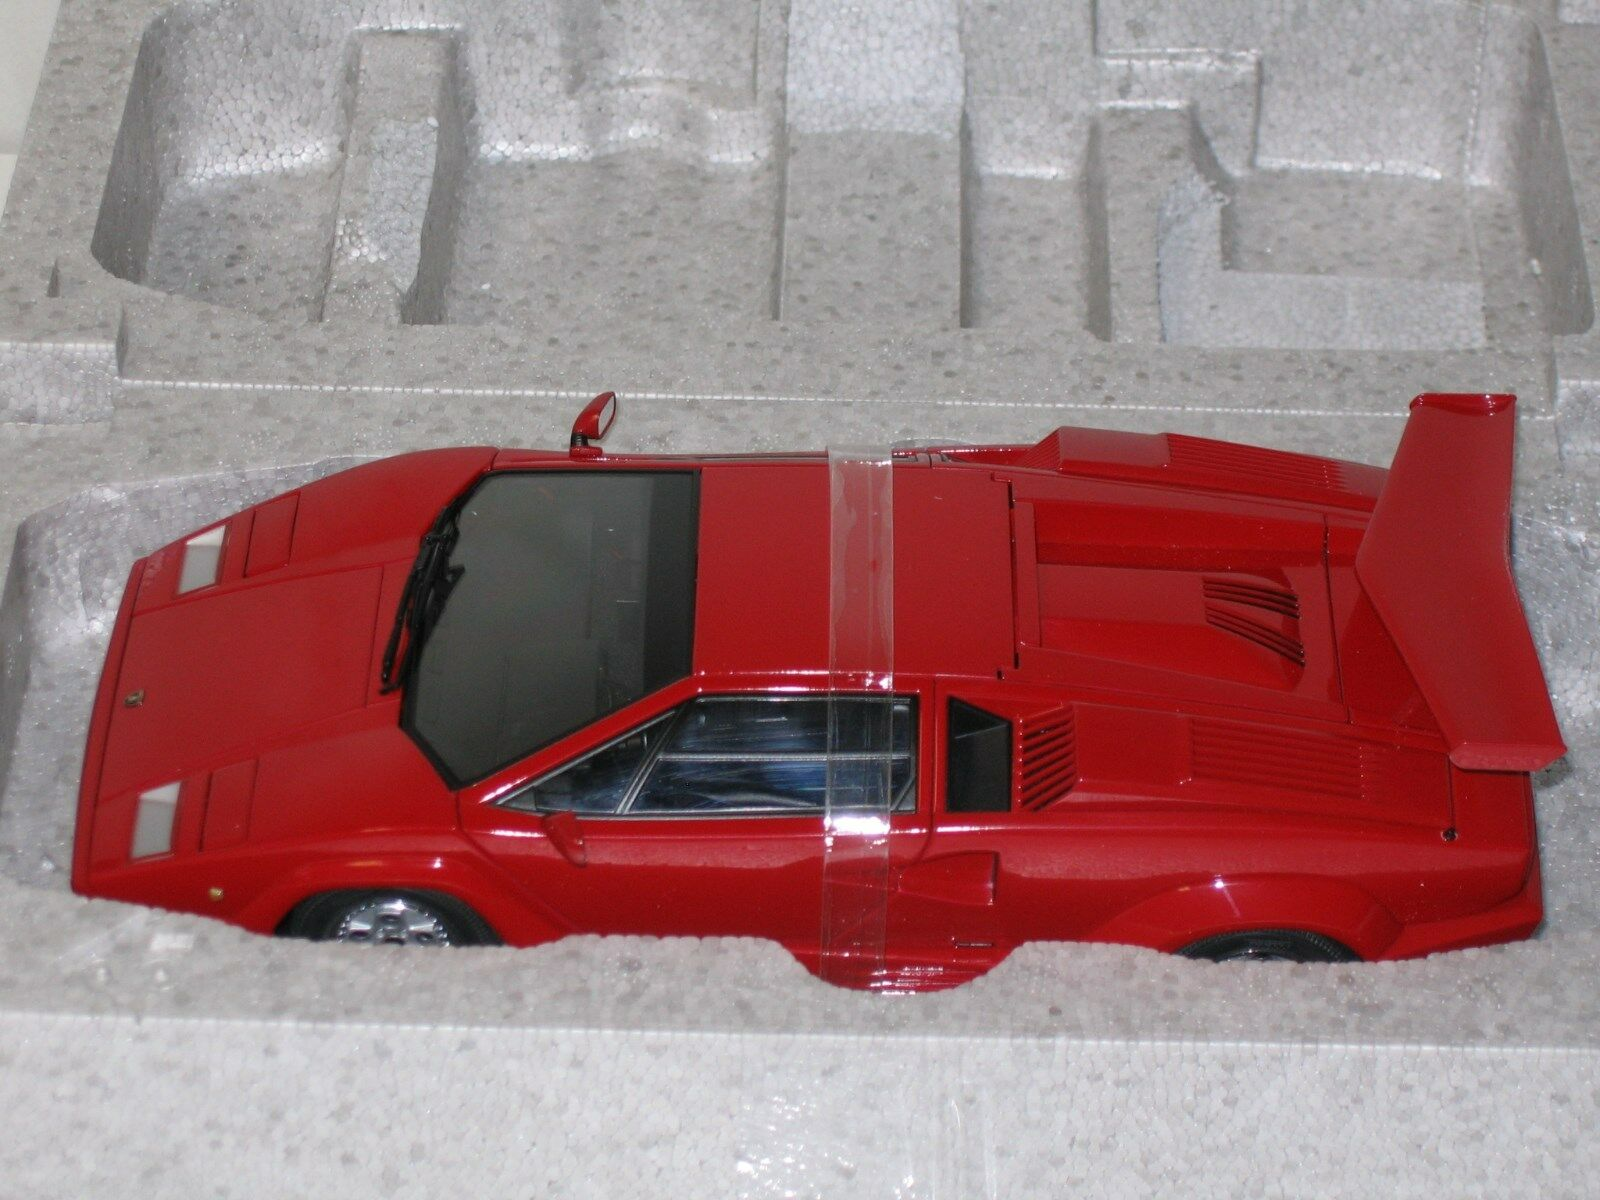 1/18 AUTOART LAMBORGHINI COUNTACH 25TH ANNIVERSARY RED NEW